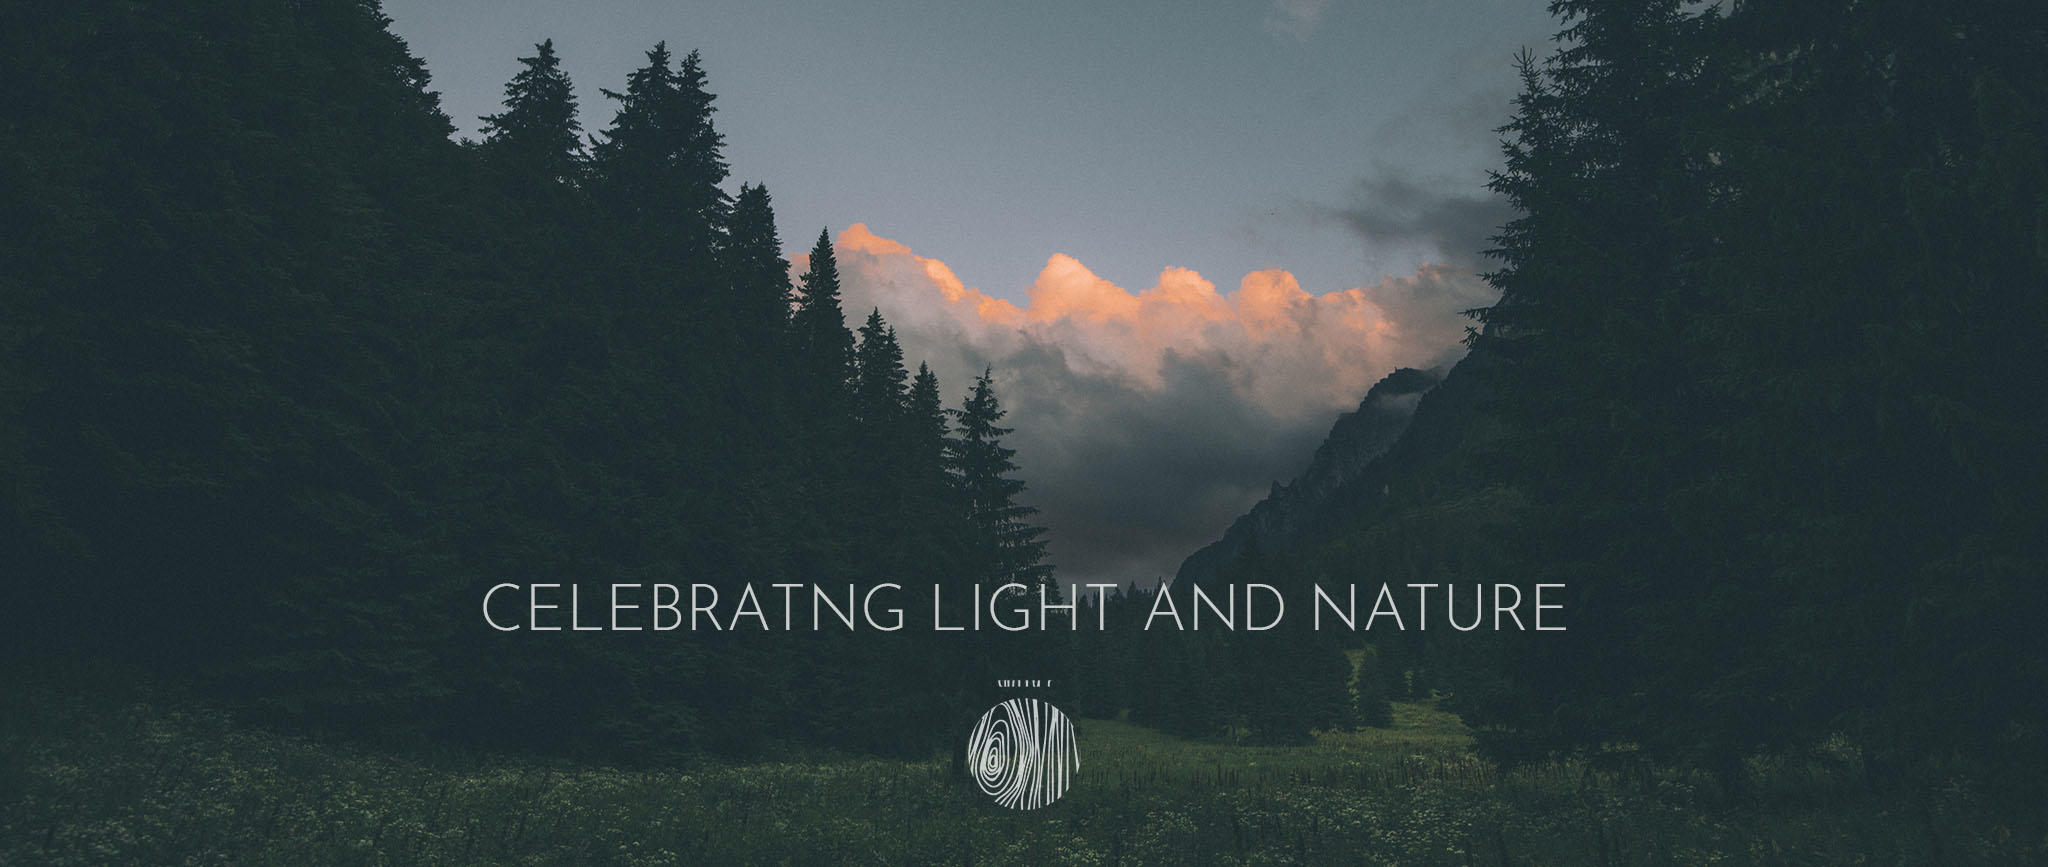 celebrating light and nature